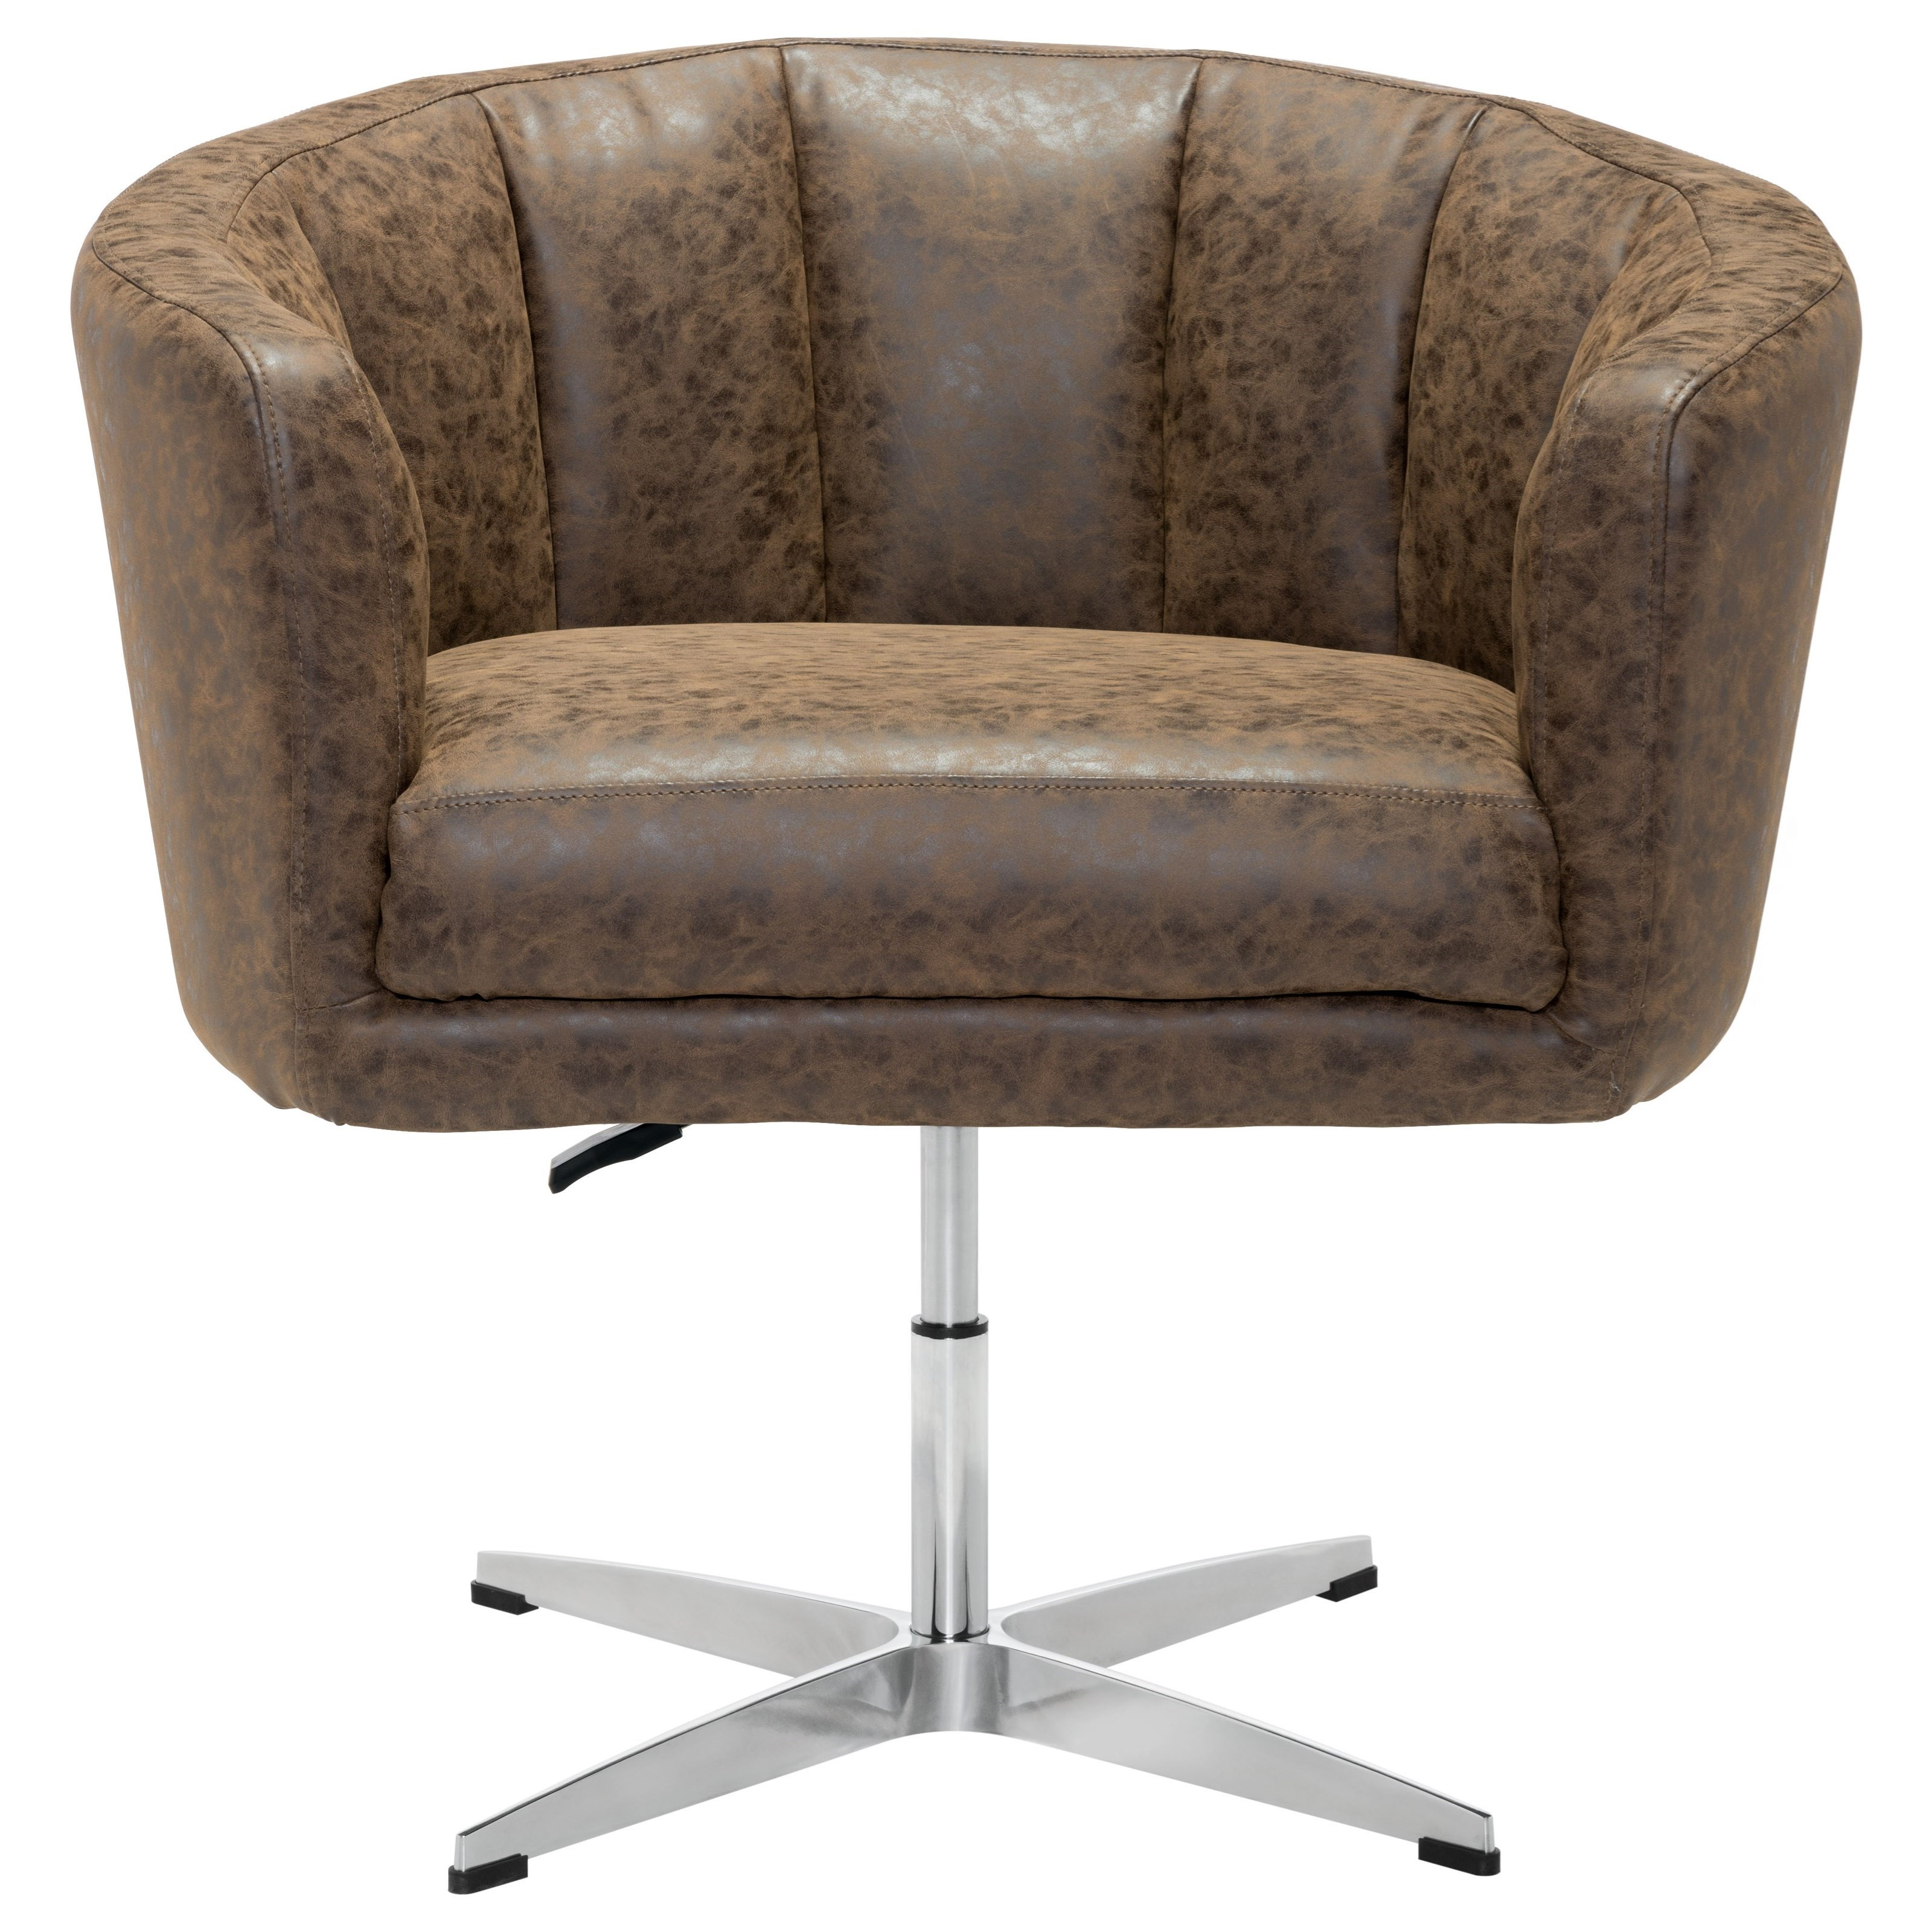 Fantastic Wilshire Adjustable Height Accent Chair By Zuo At Royal Furniture Cjindustries Chair Design For Home Cjindustriesco